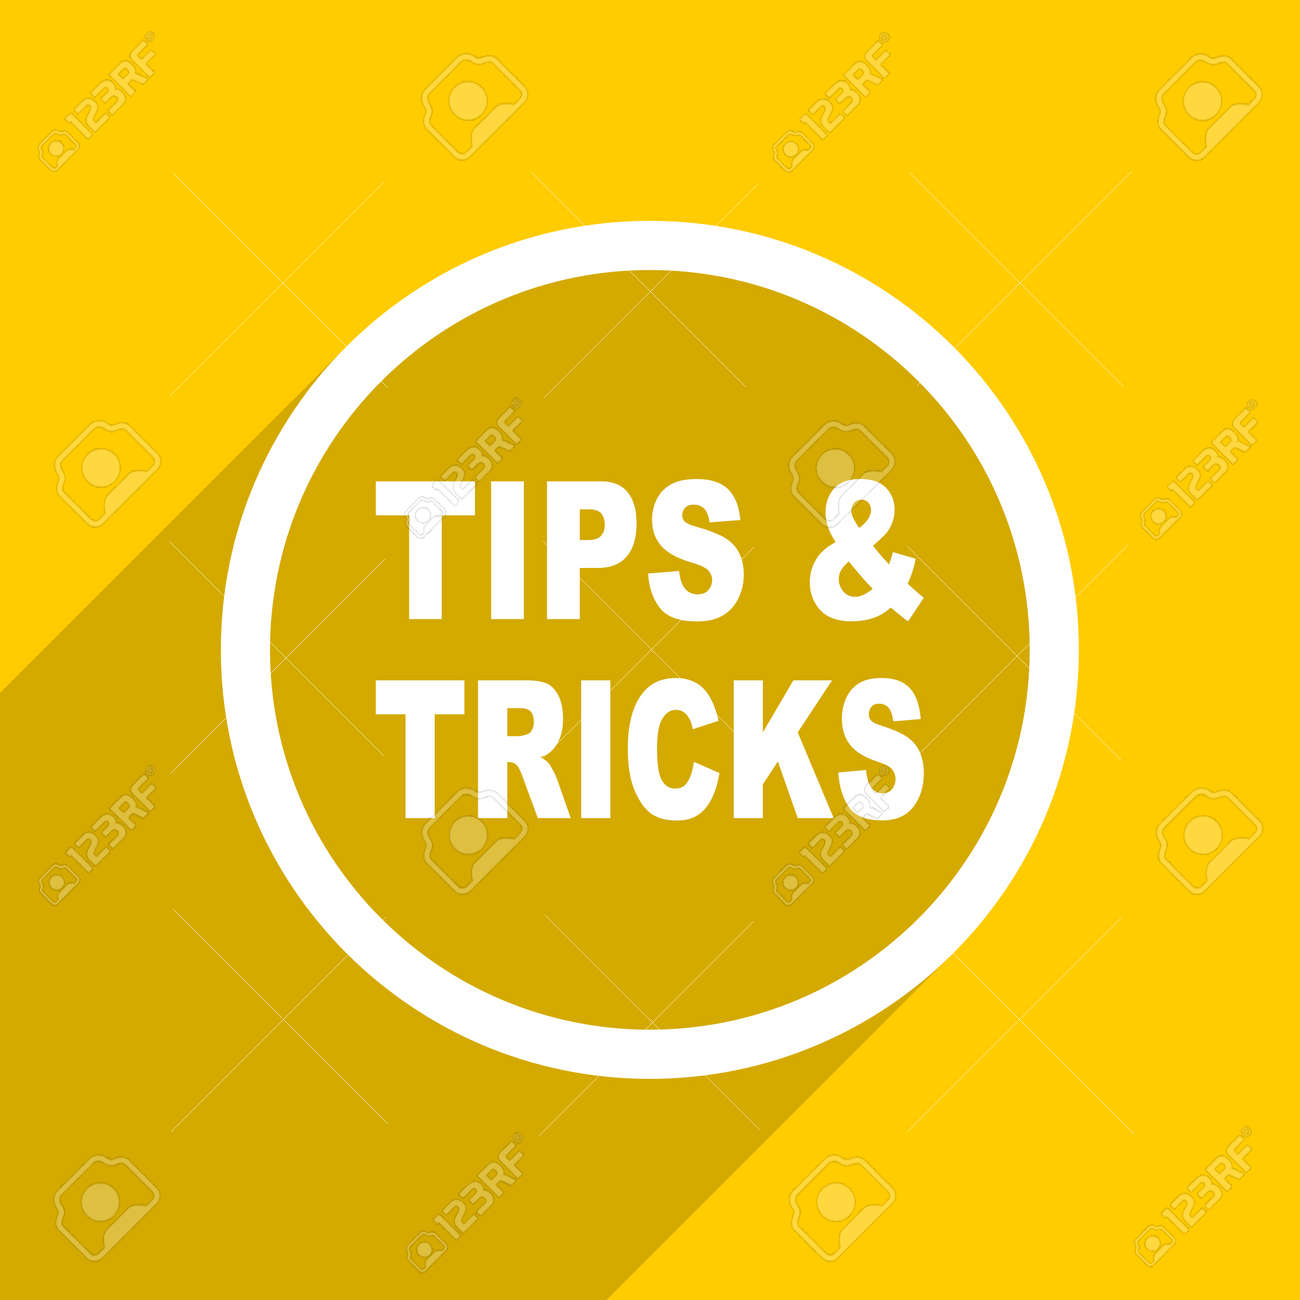 Yellow Flat Design Tips Tricks Web Modern Icon For Mobile App Stock Photo Picture And Royalty Free Image Image 56765648